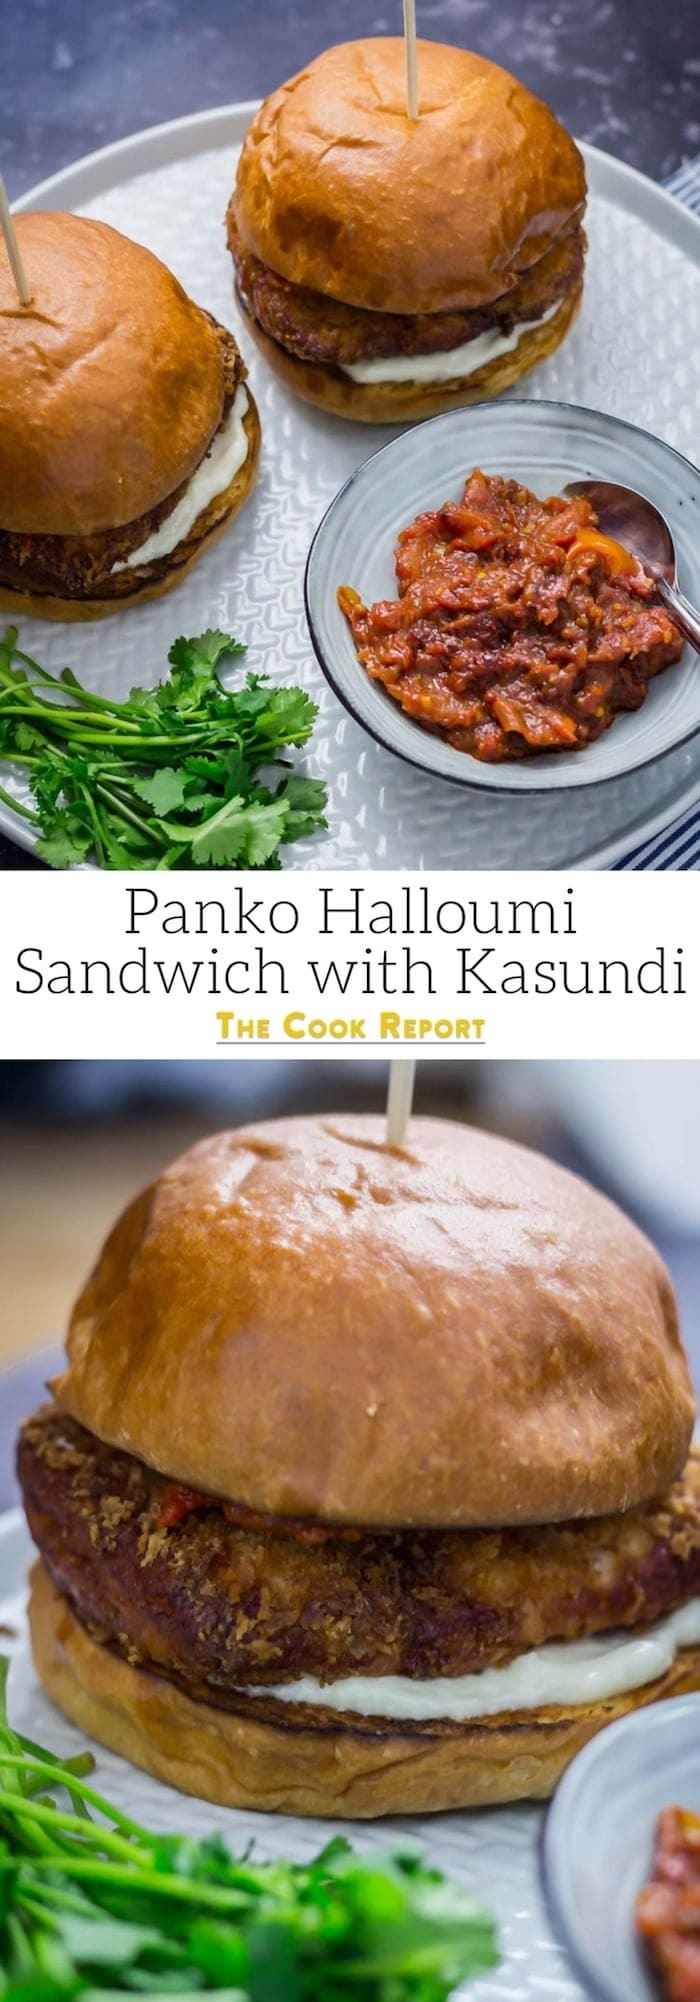 Panko Halloumi Sandwich with Kasundi. This halloumi sandwich is the perfect combination of crunchy and chewy. The sweet and spicy kasundi tastes amazing with the panko coated cheese for a filling vegetarian meal. #vegetarian #halloumi #sandwich #recipe #halloumisandwich